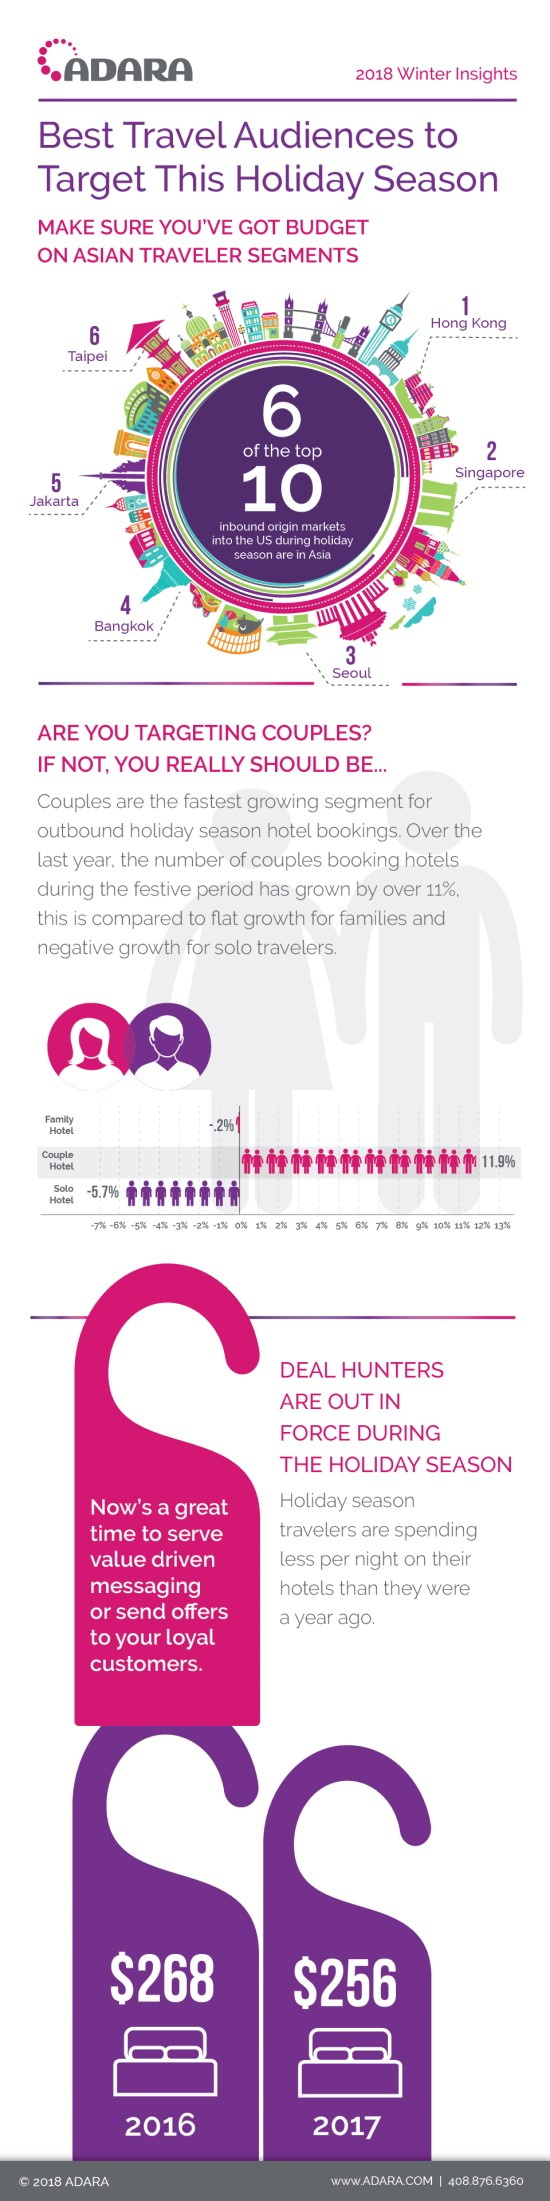 Infographic - Where Are Travelers Checking In?